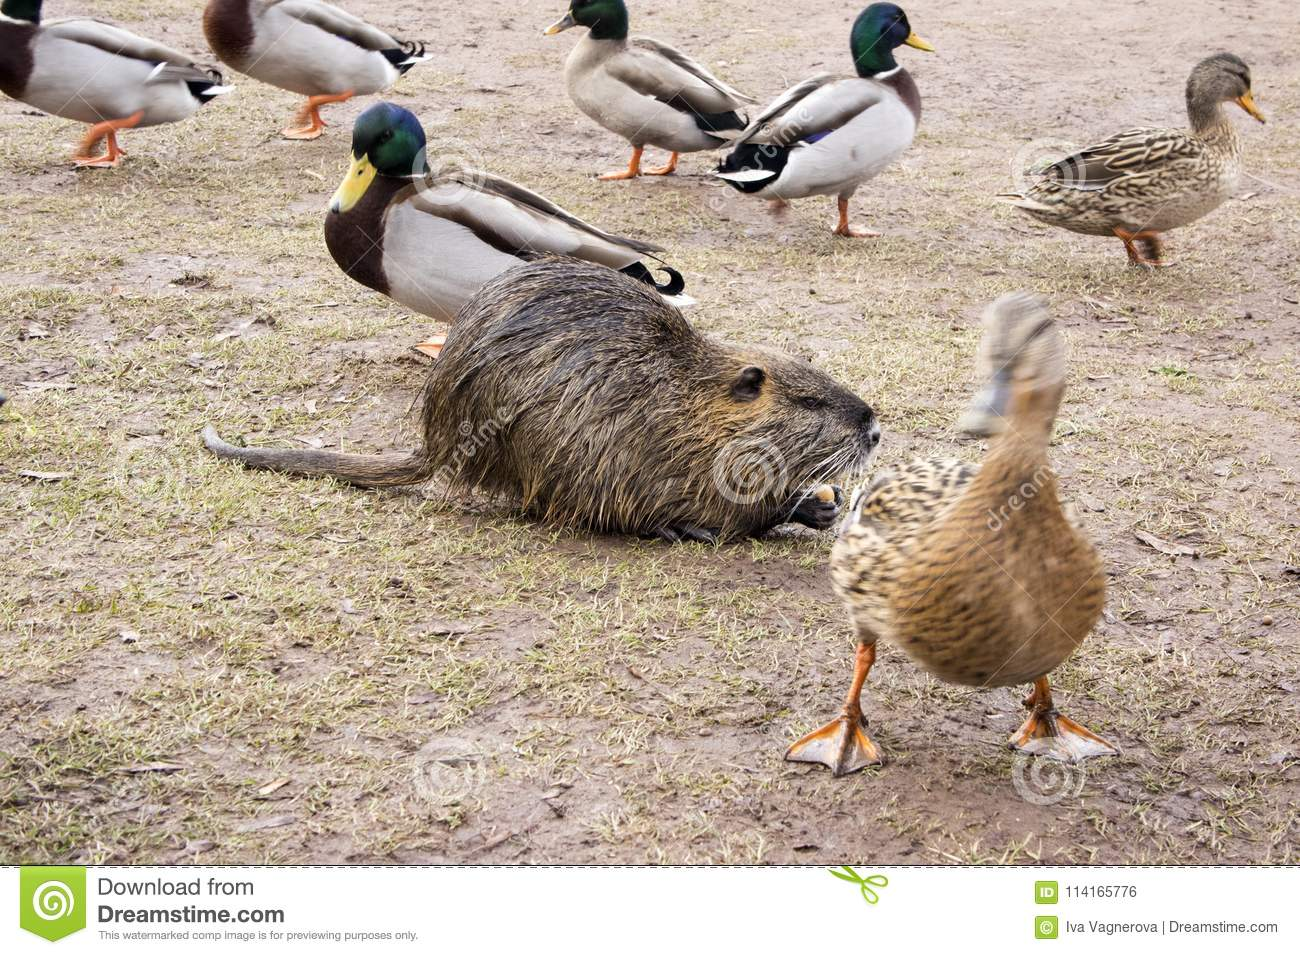 Coypu, river rat, nutria furry animal and group of ducks